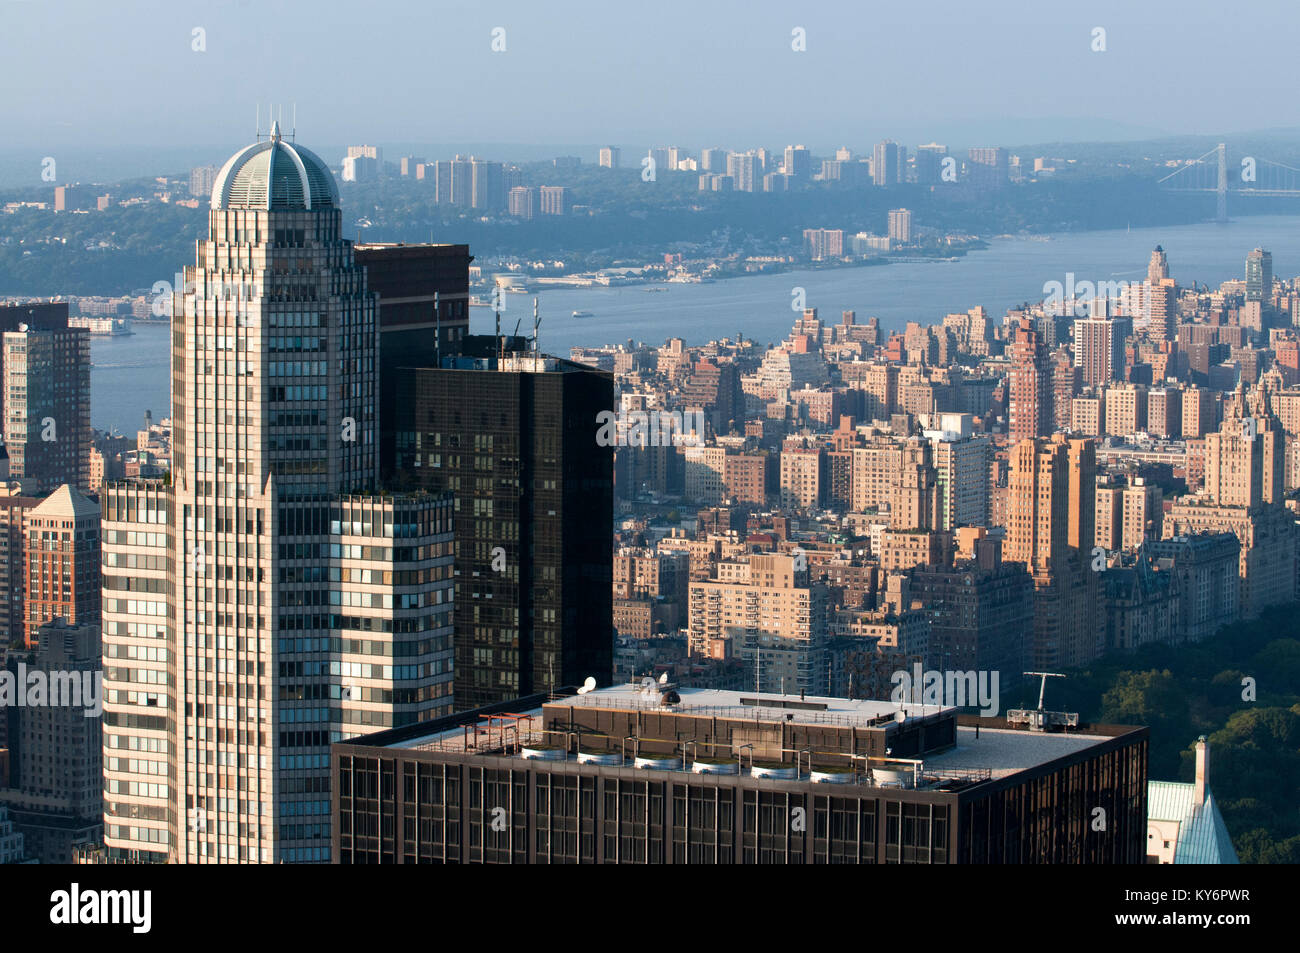 Aerial views of Central Park and the Hudson River Park, in addition to the skyscrapers that surround it. - Stock Image